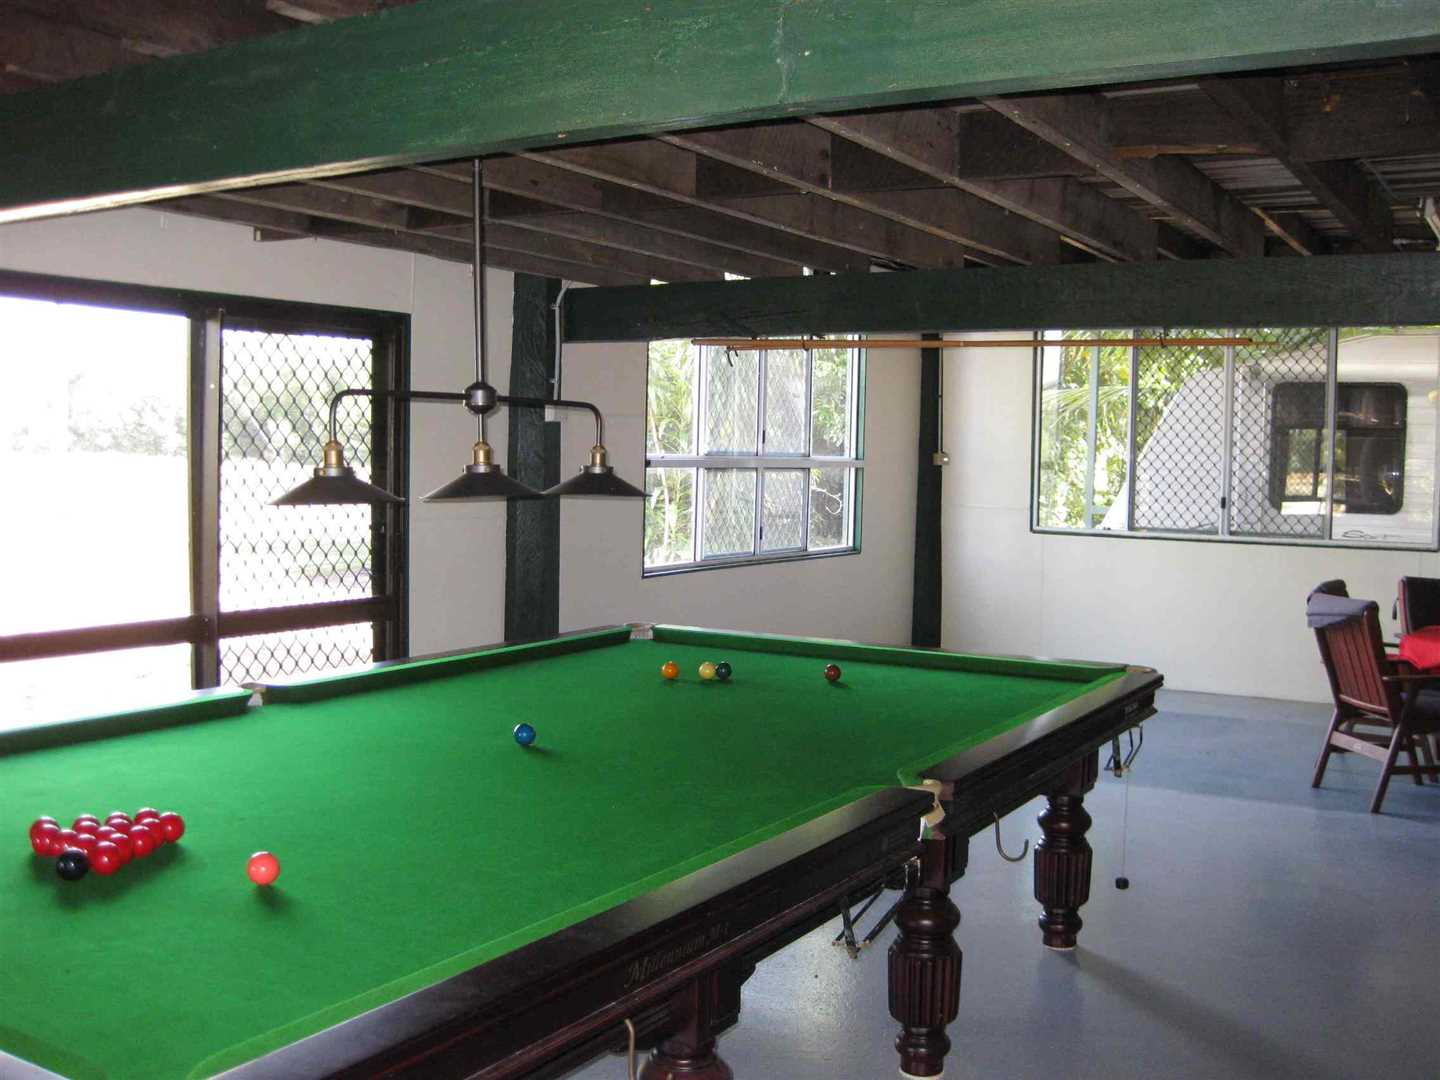 Inside view of part of home showing part of ground floor entertainment room, photo 2